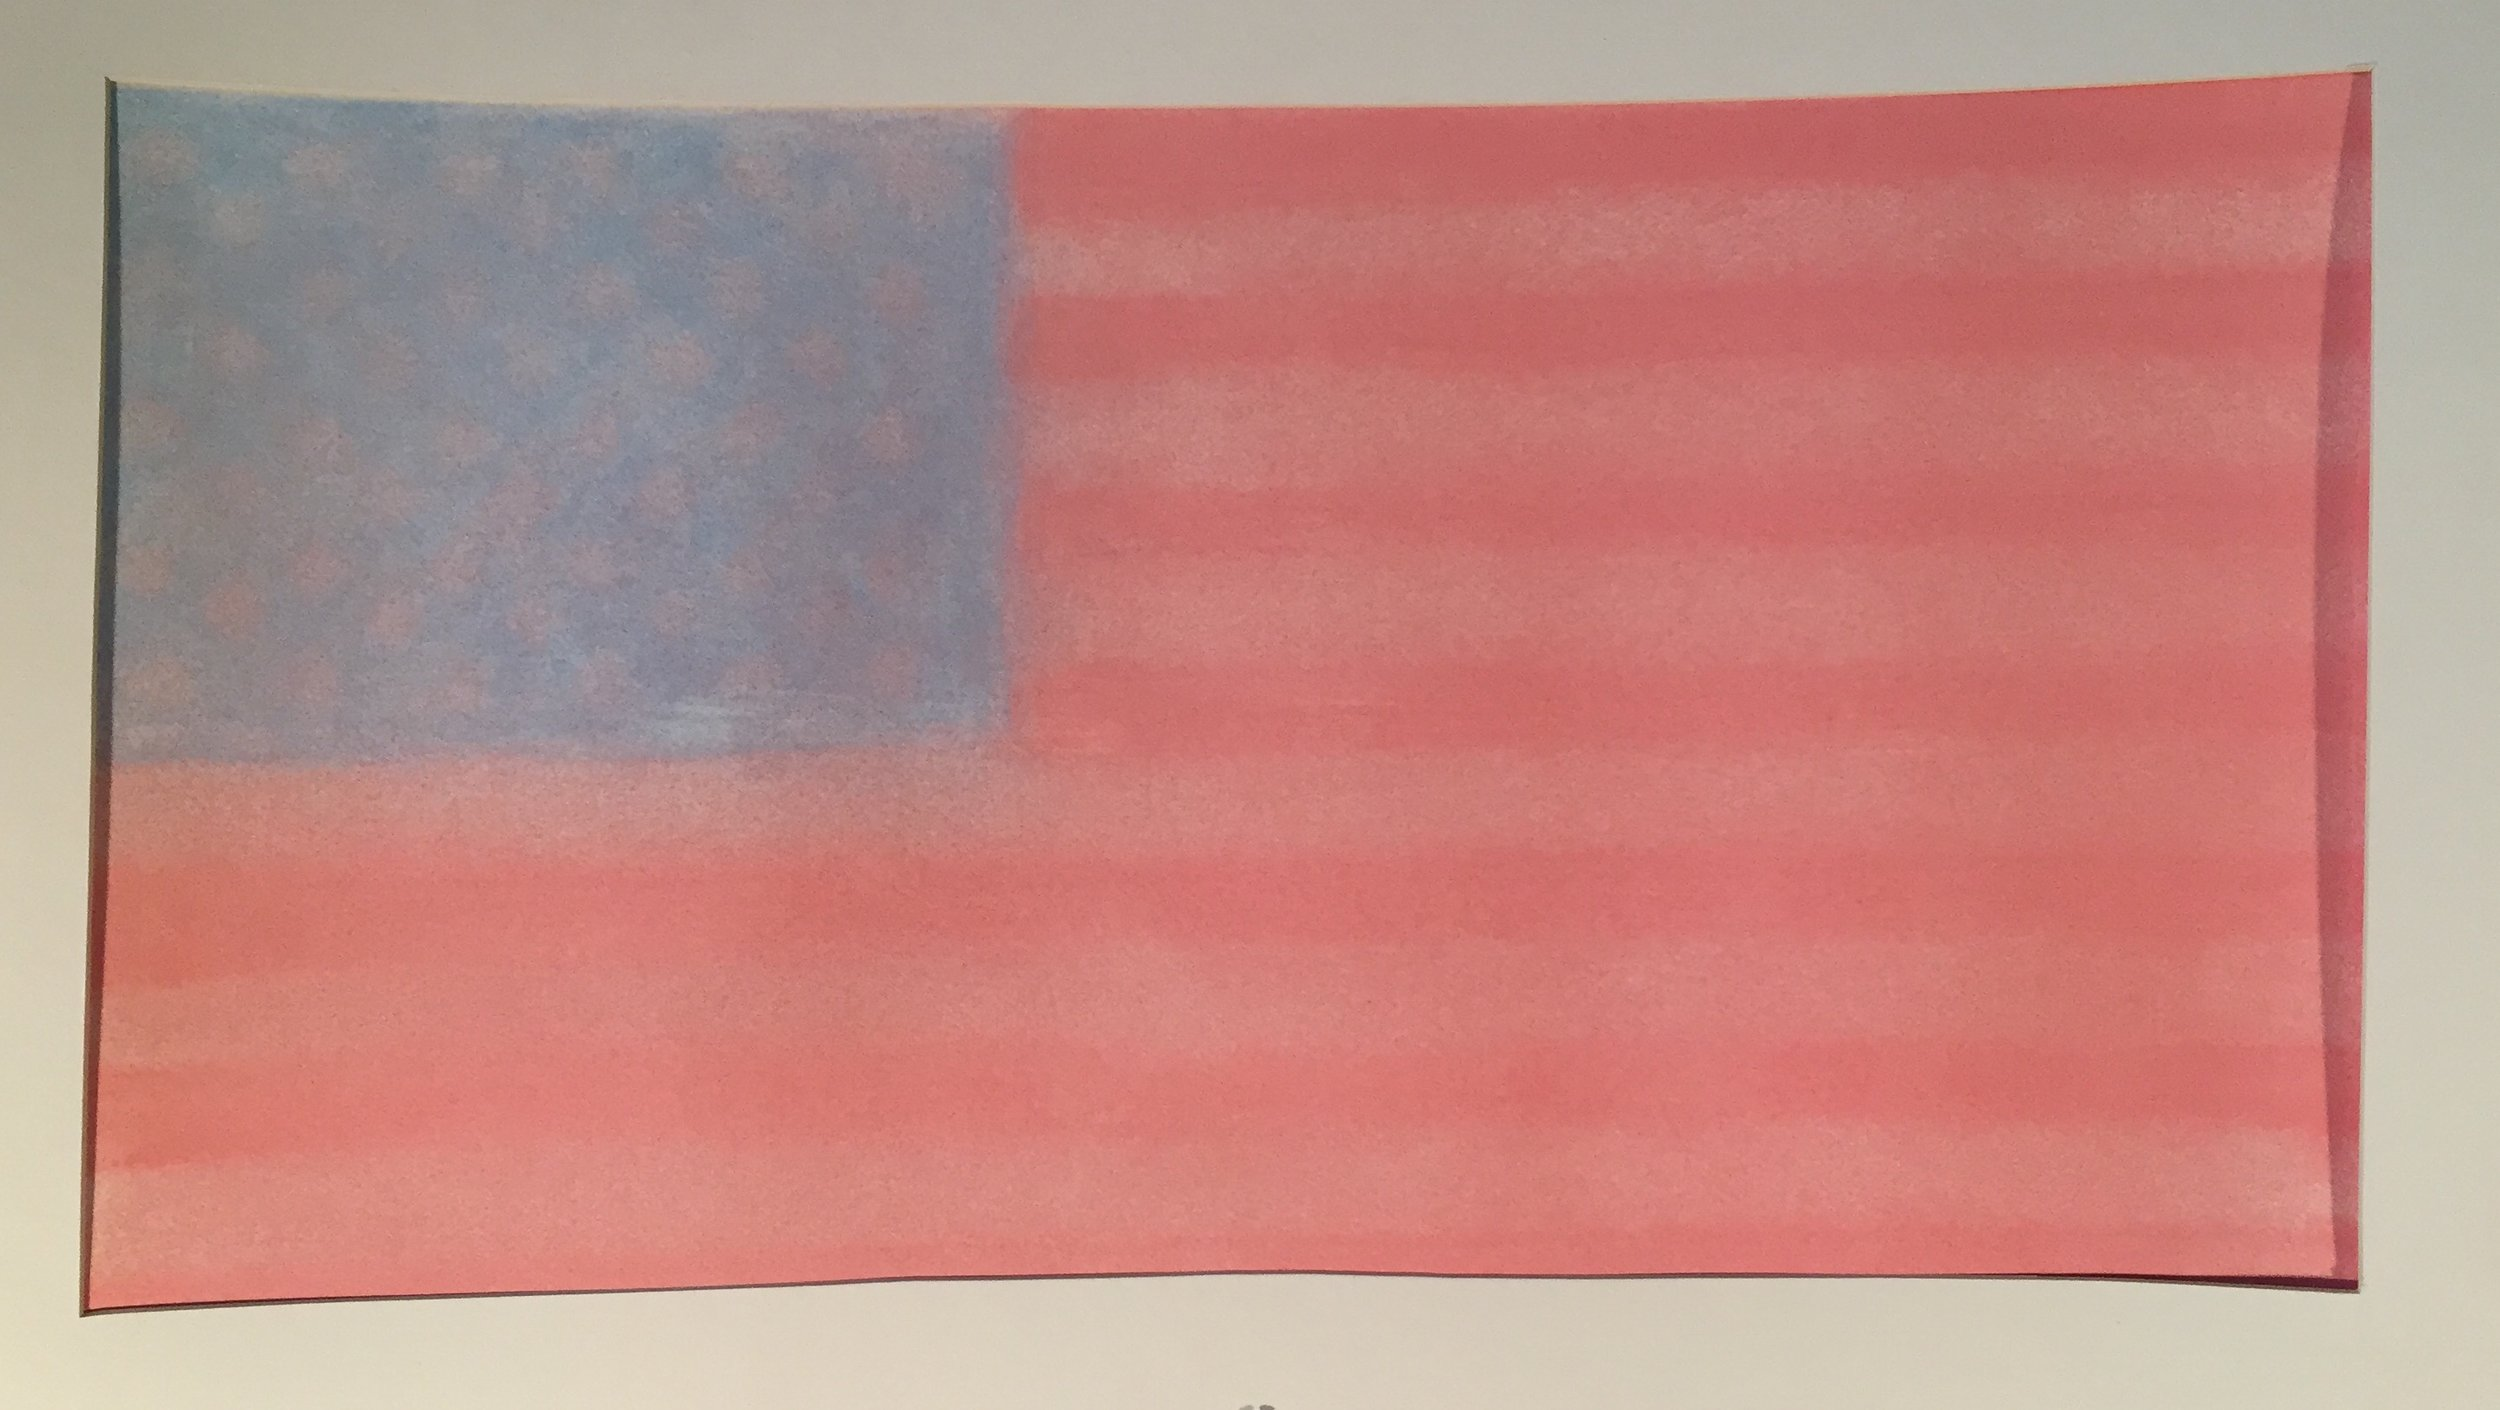 American Flag, 11/8/16,  2016 Chalk on paper 14 x 24 inches